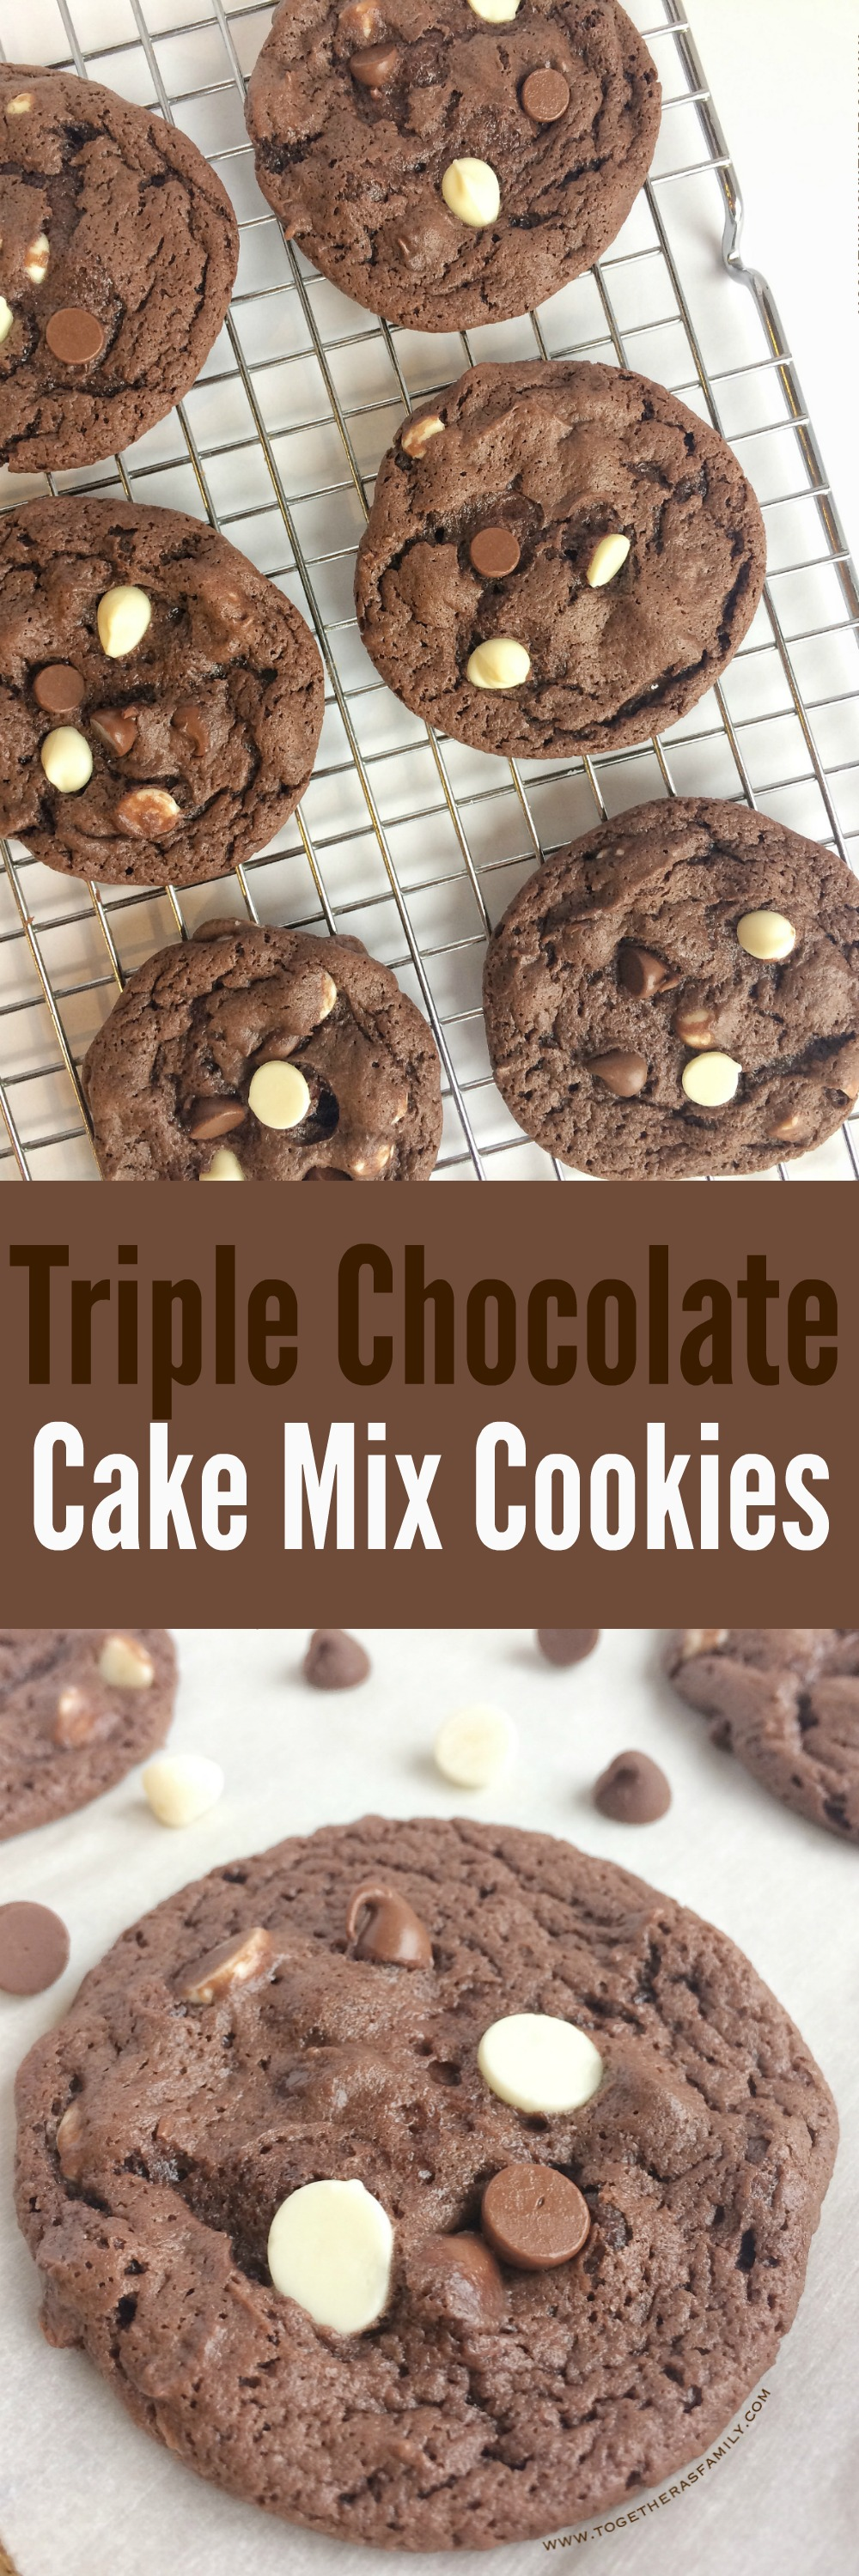 Chocolate cake mix cookies recipe